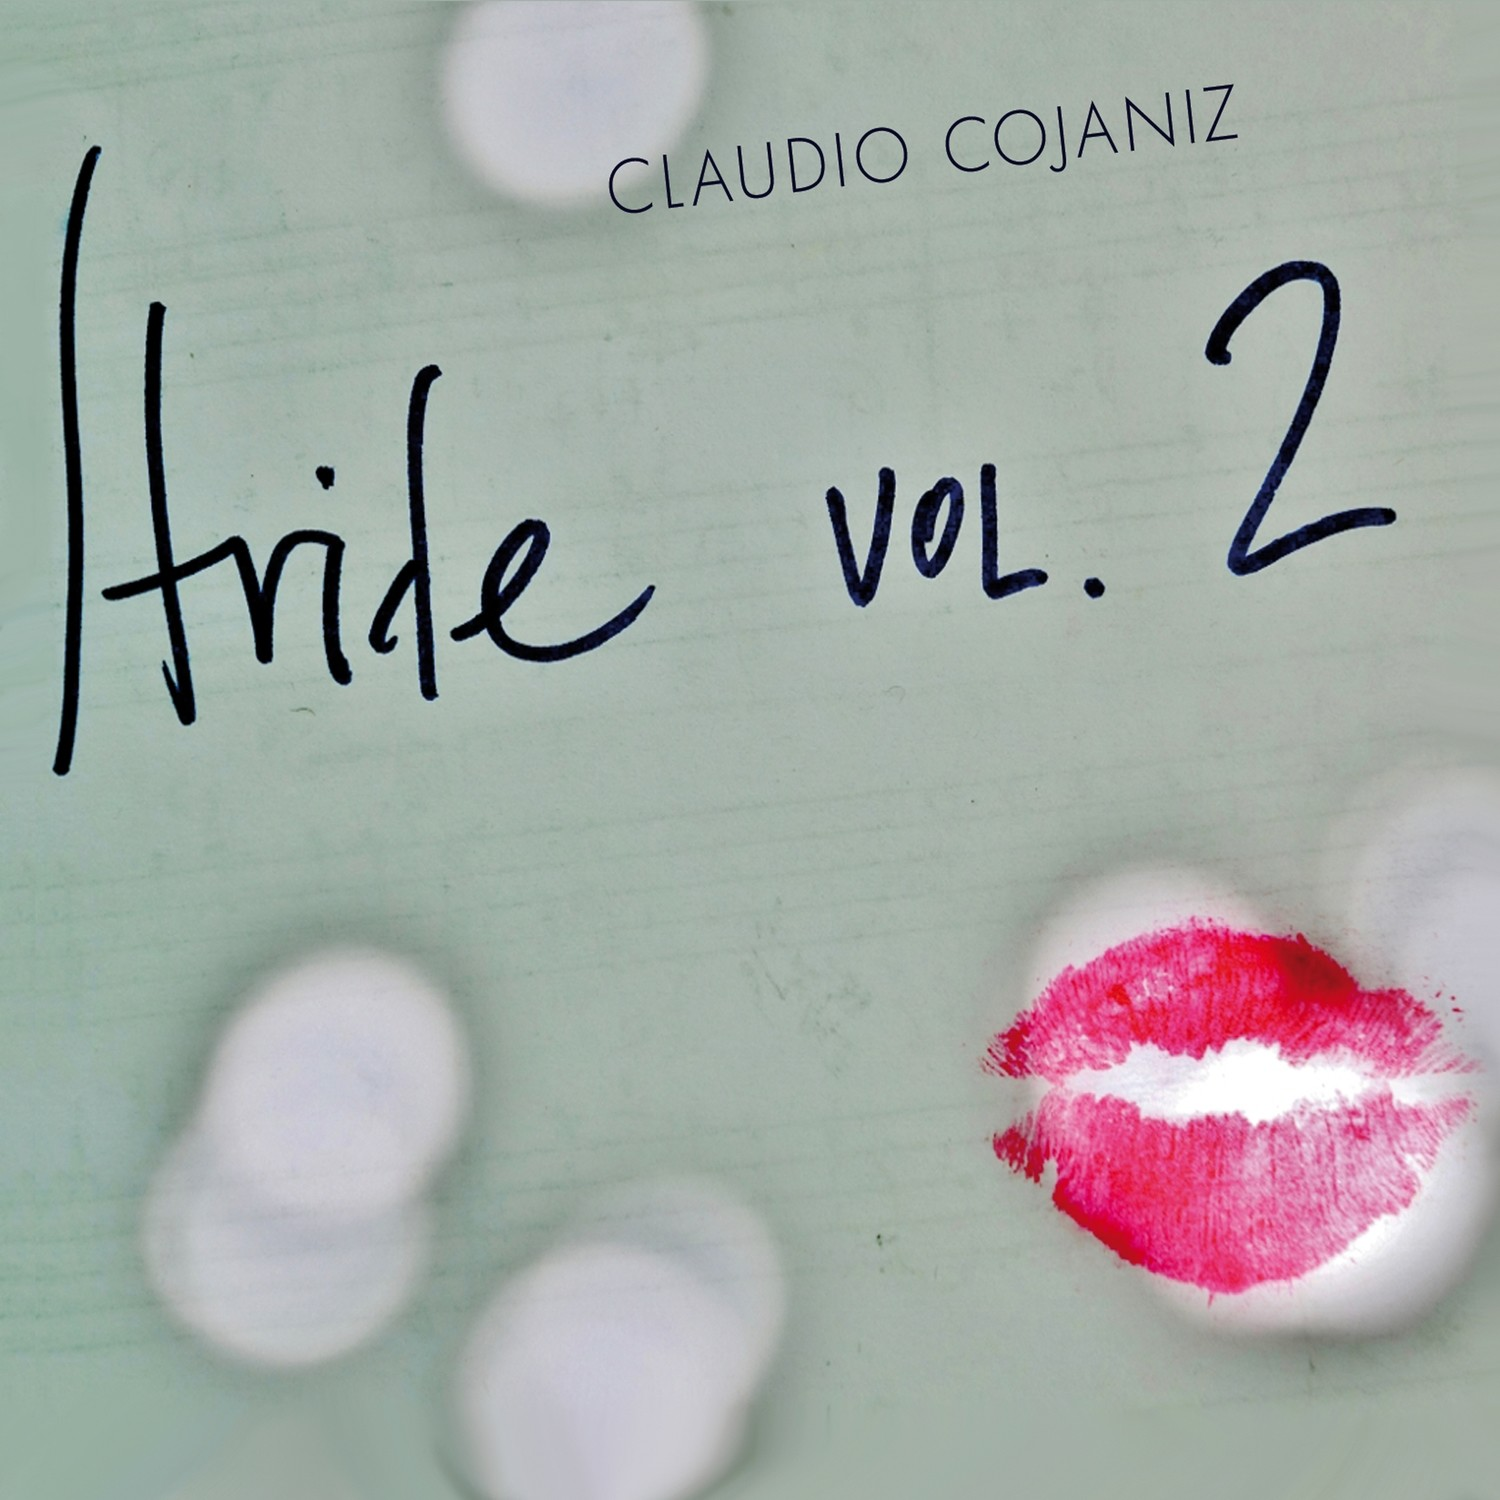 CLAUDIO COJANIZ   «Stride vol. 2»